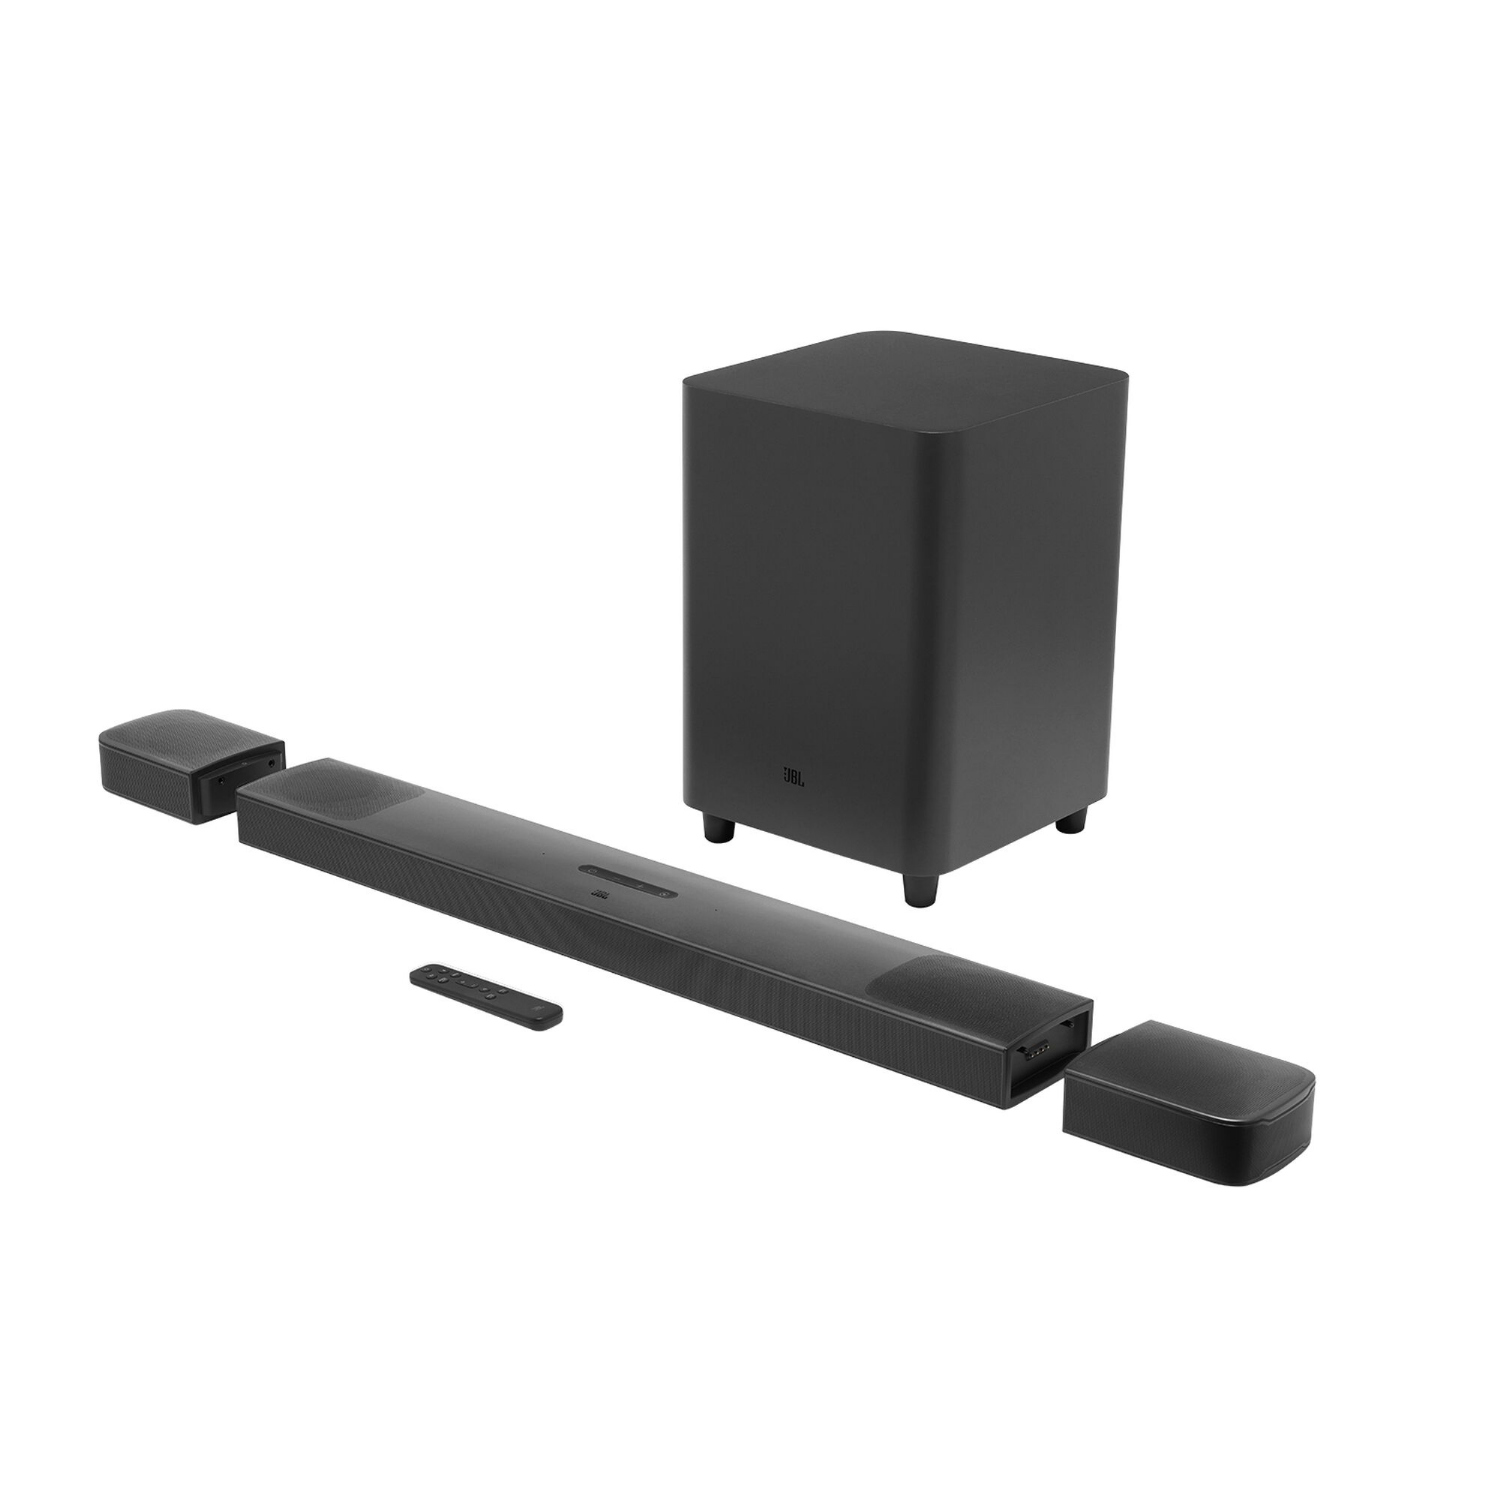 JBL BAR 9.1 Soundbar-System TRUE WIRELESS SURROUND WITH DOLBY ATMOS® JBLBAR913DBLKEP